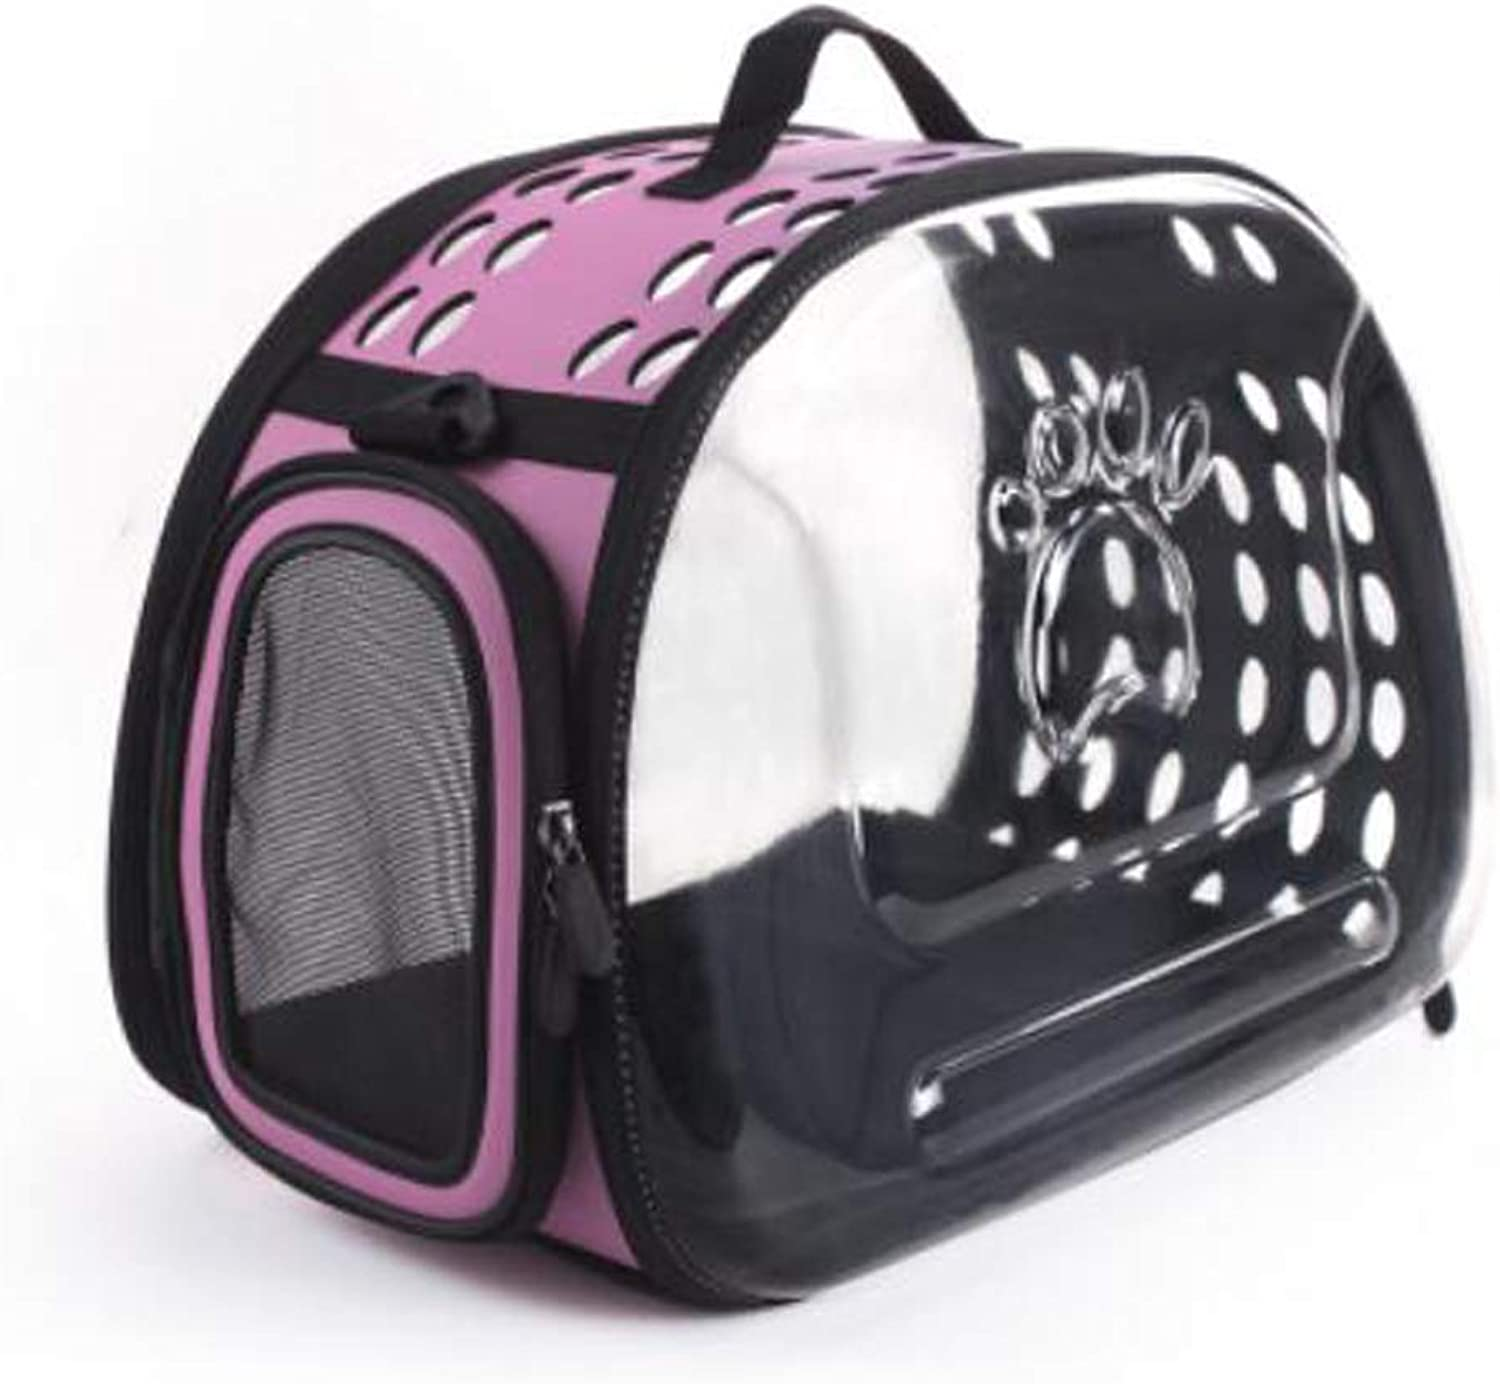 FJH Space Pet Backpack Portable Transparent Cabin Cat Bag Out Portable Dog Bag Shoulder Bag Teddy Dog Bag Cat Cage (color   Purple)